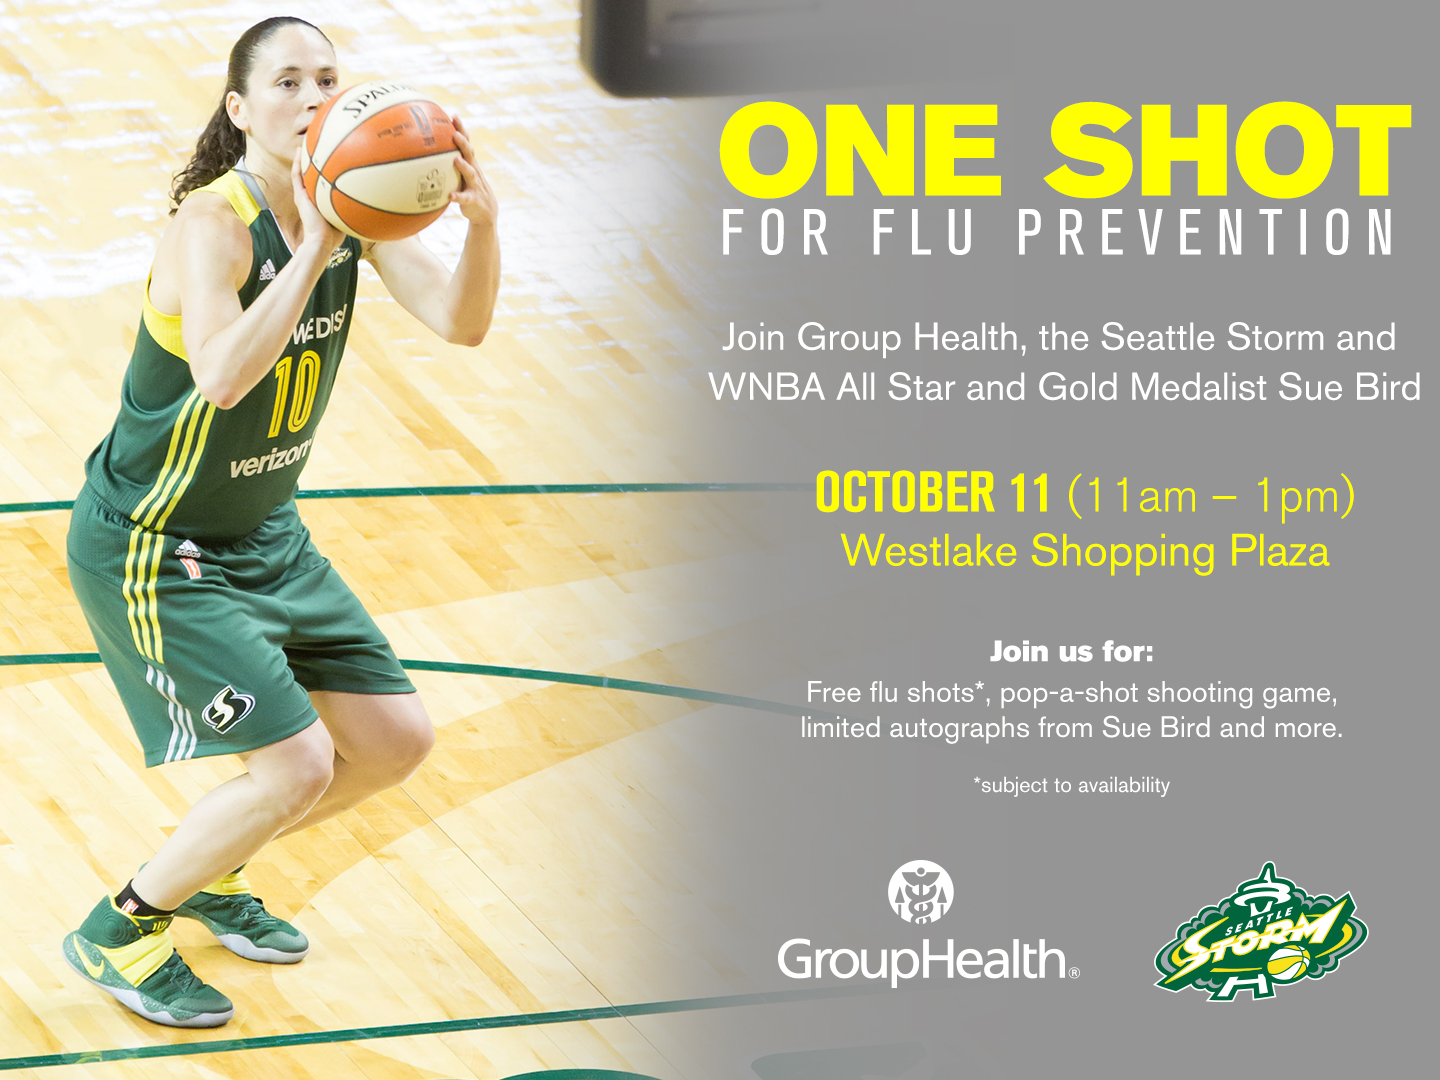 One Shot for Flu Prevention brought to you by Group Health and Seattle Storm's Sue Bird. Join us in October at the Westlake Shopping Plaza. More details to come.